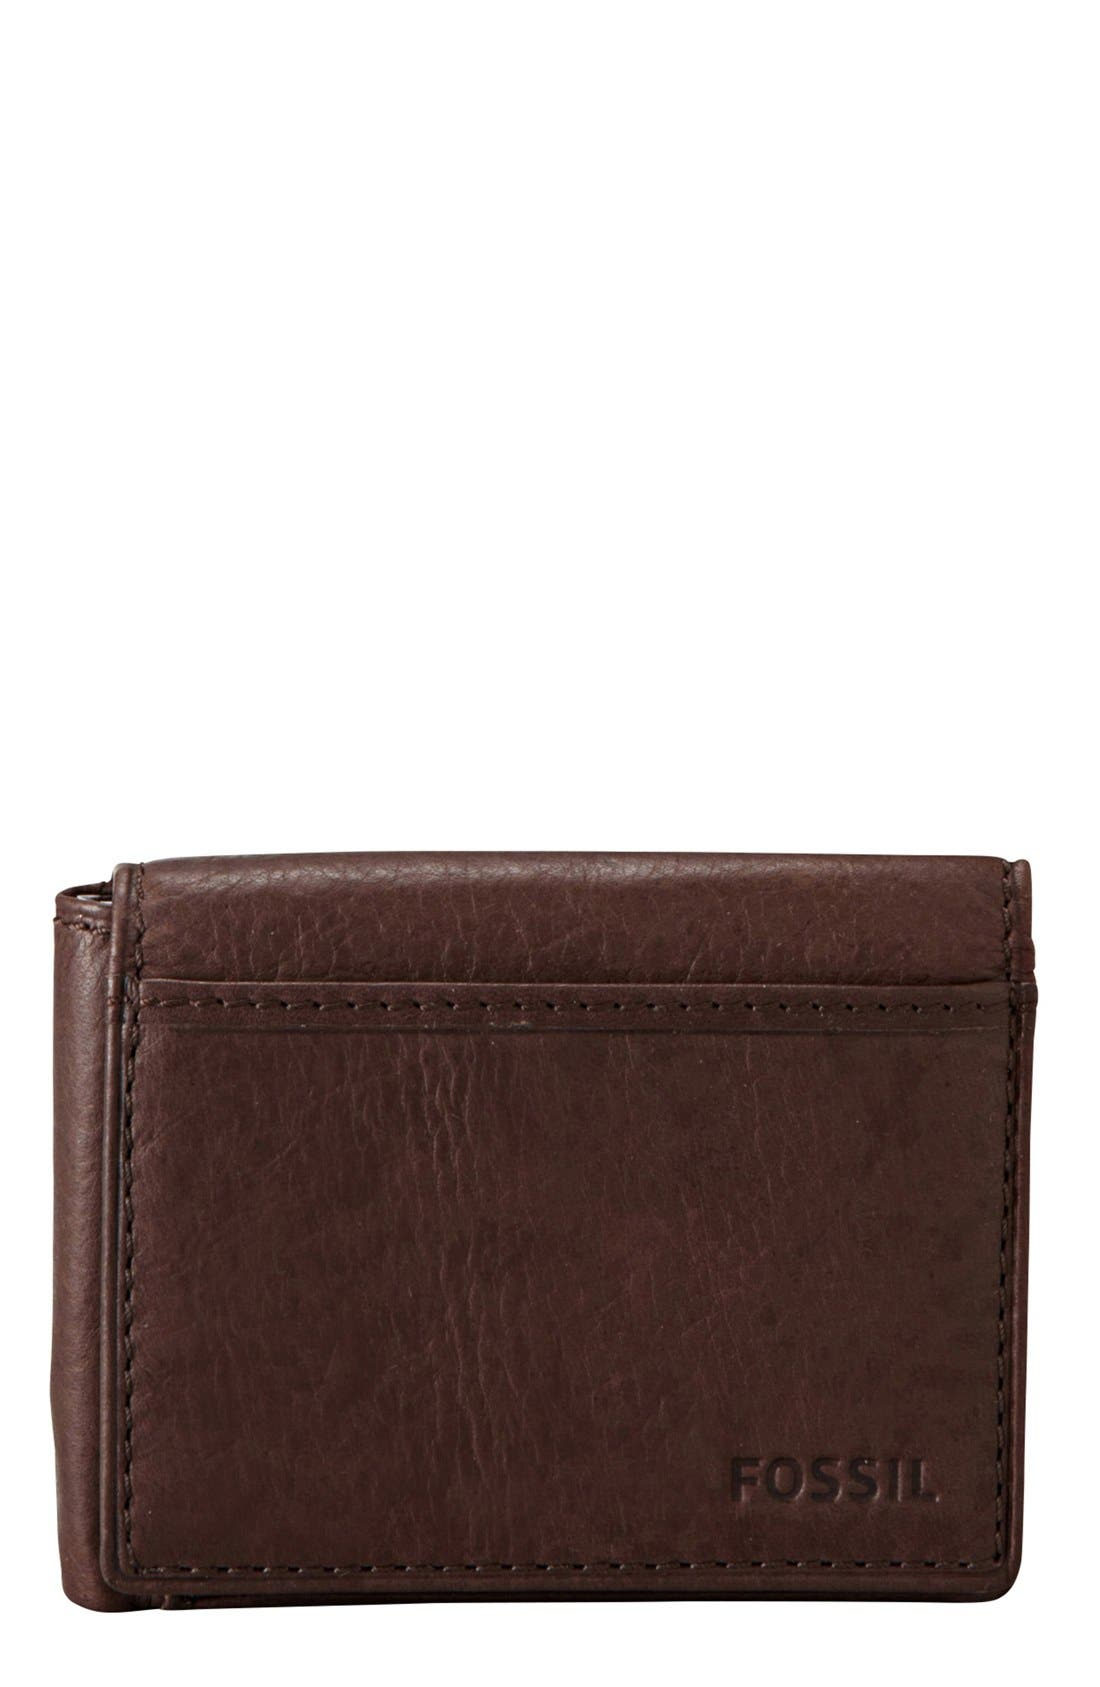 Alternate Image 1 Selected - Fossil 'Ingram' Leather Flip Trifold Wallet